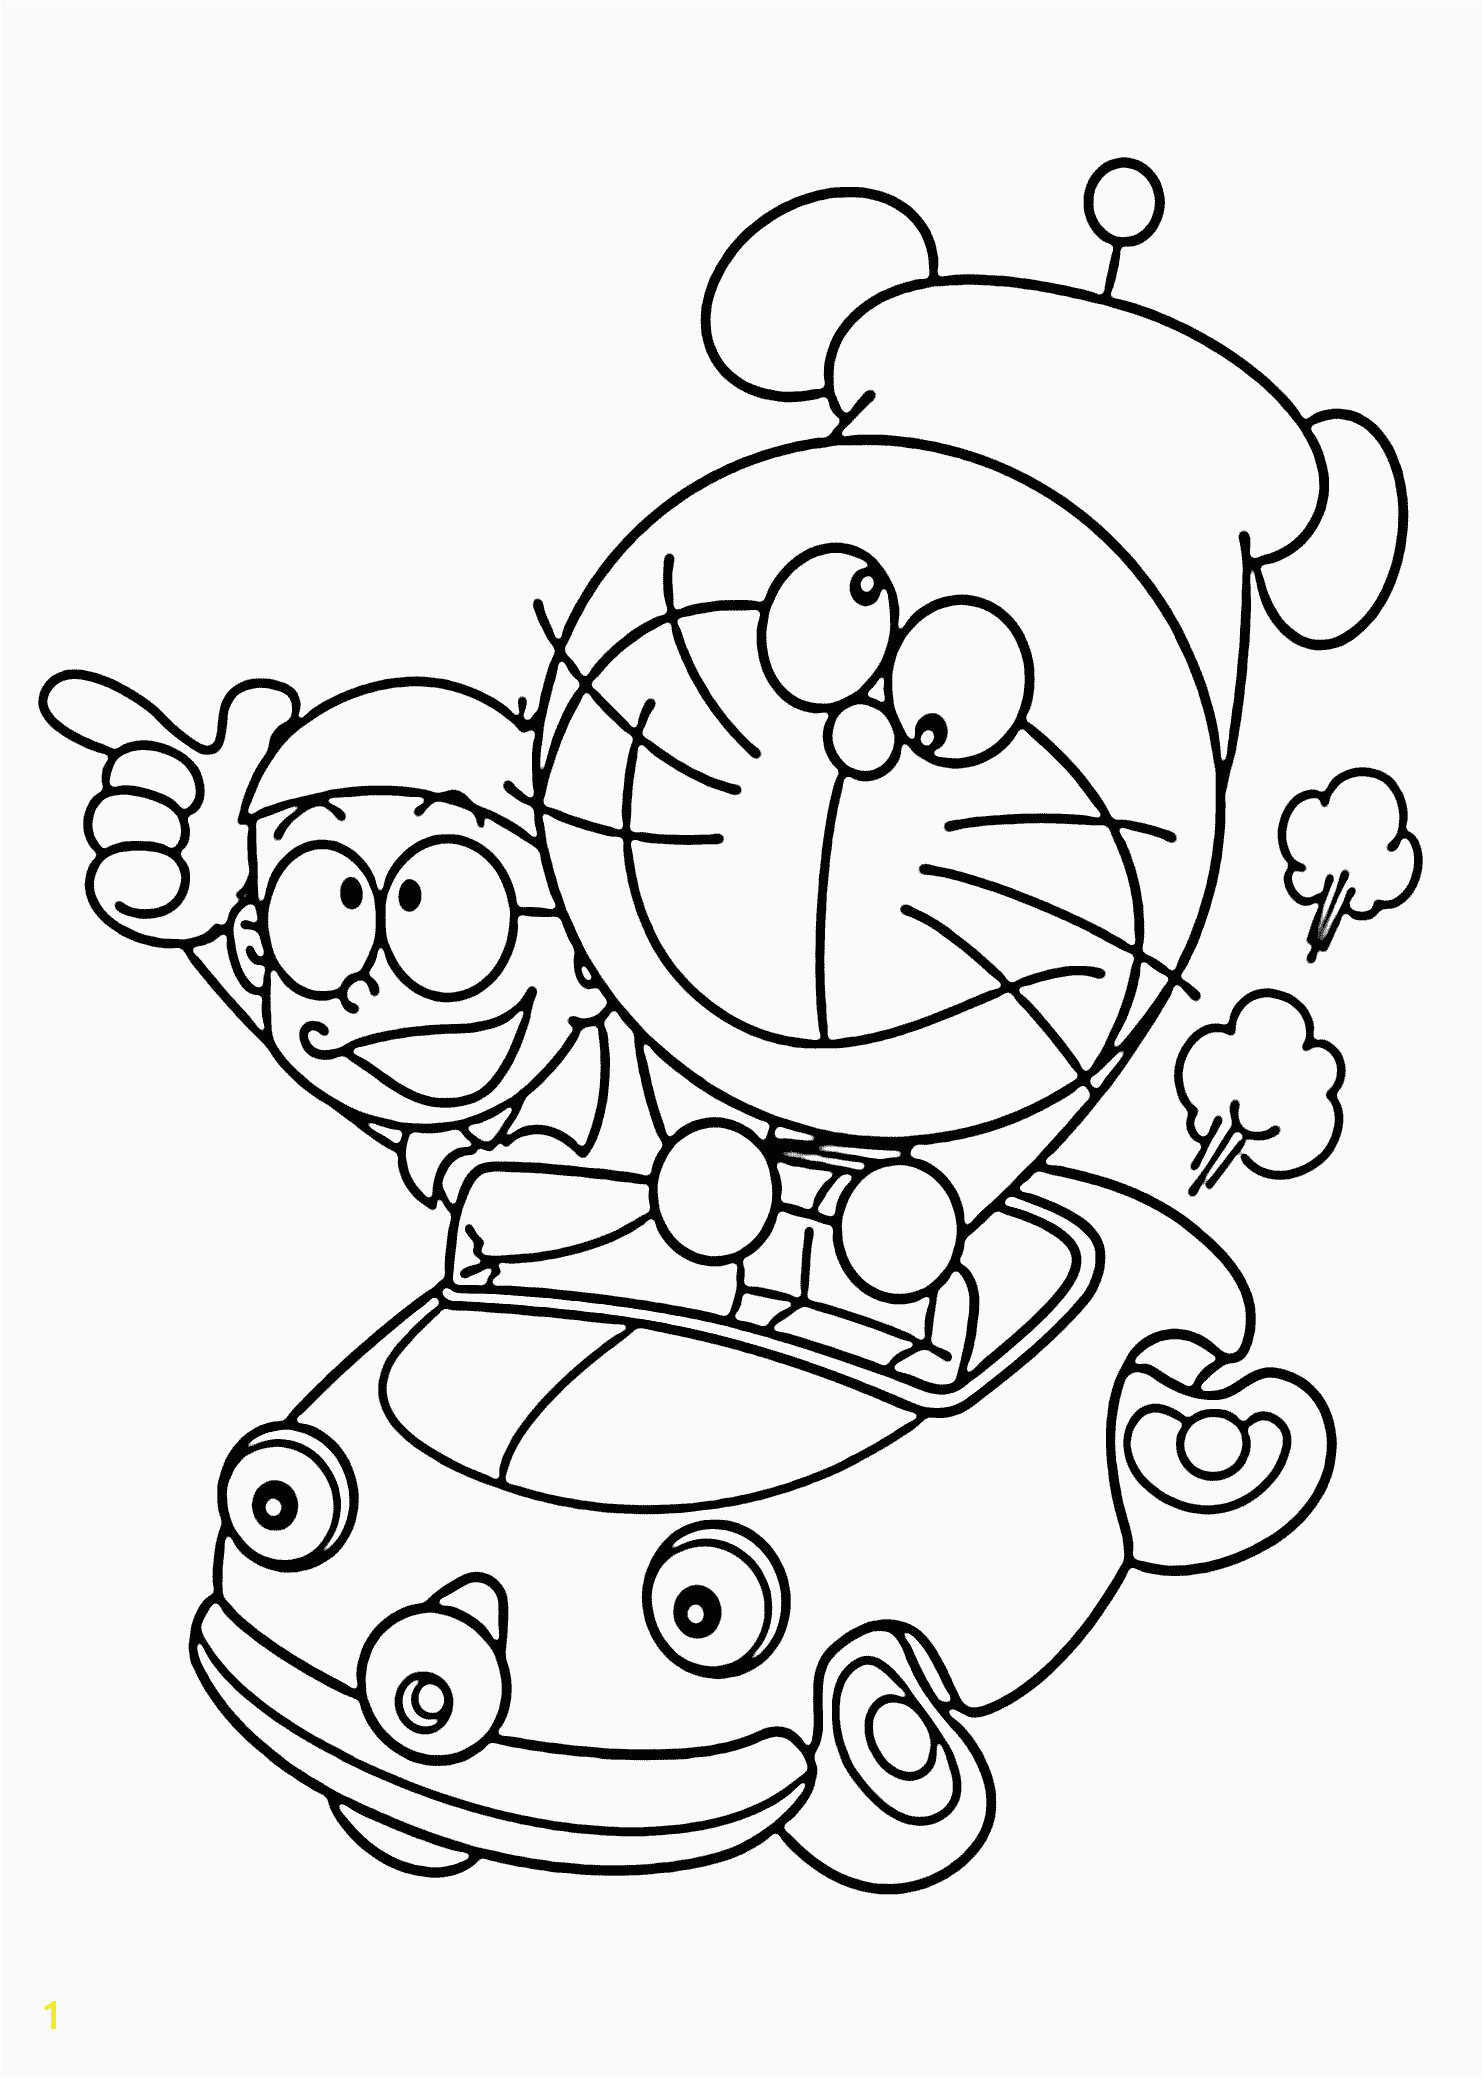 Cuties Coloring Pages Basketball Coloring Page Elegant Cuties Coloring Pages Home Coloring Pages Best Color